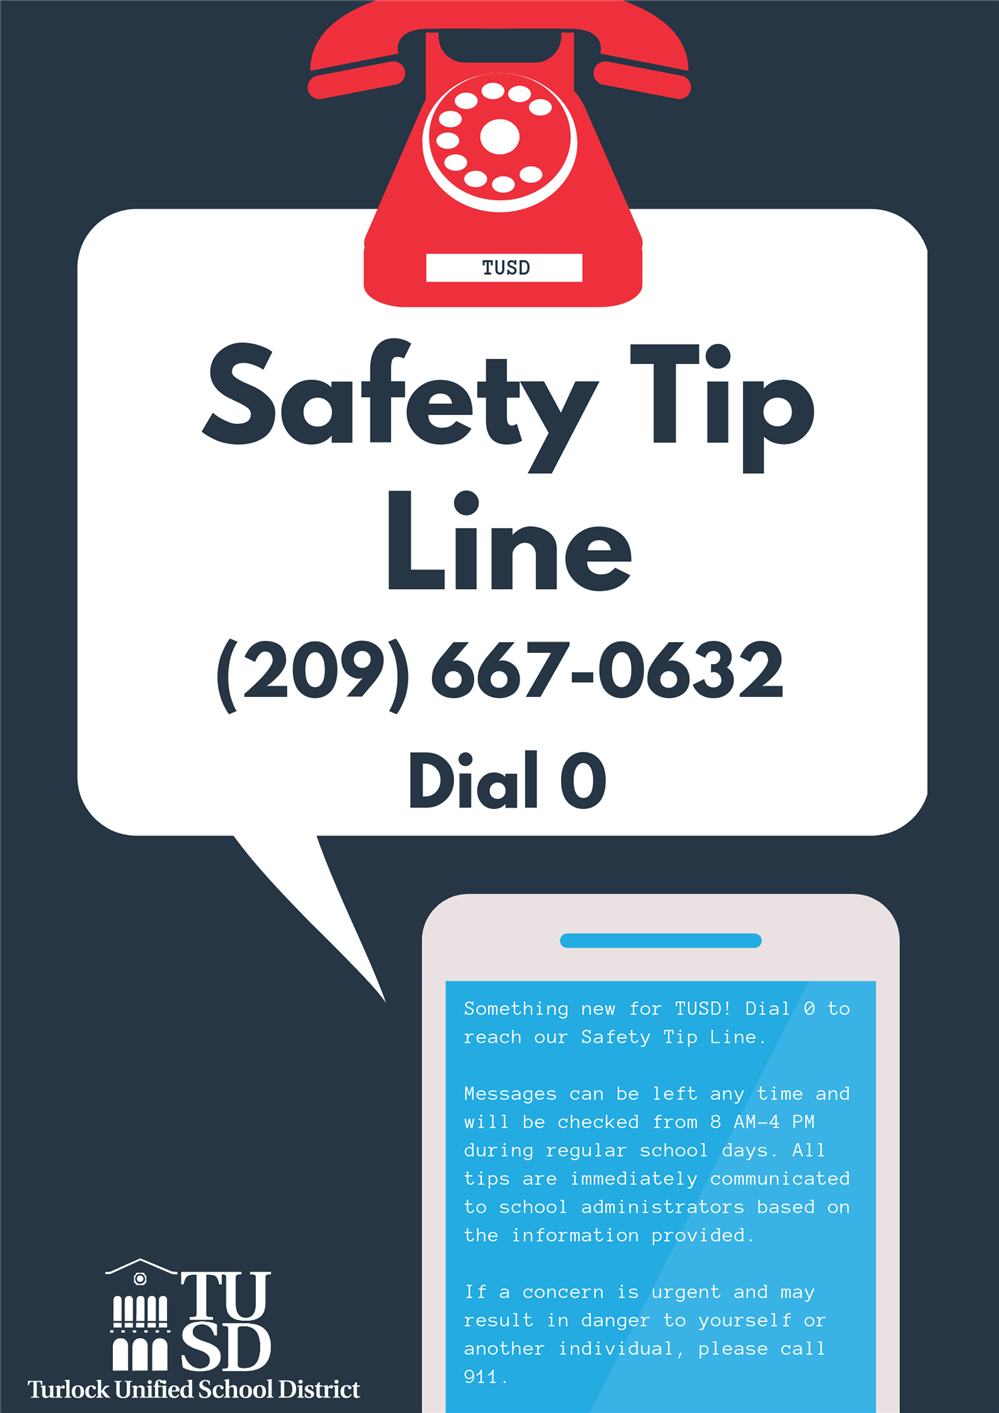 Safety Tip Line